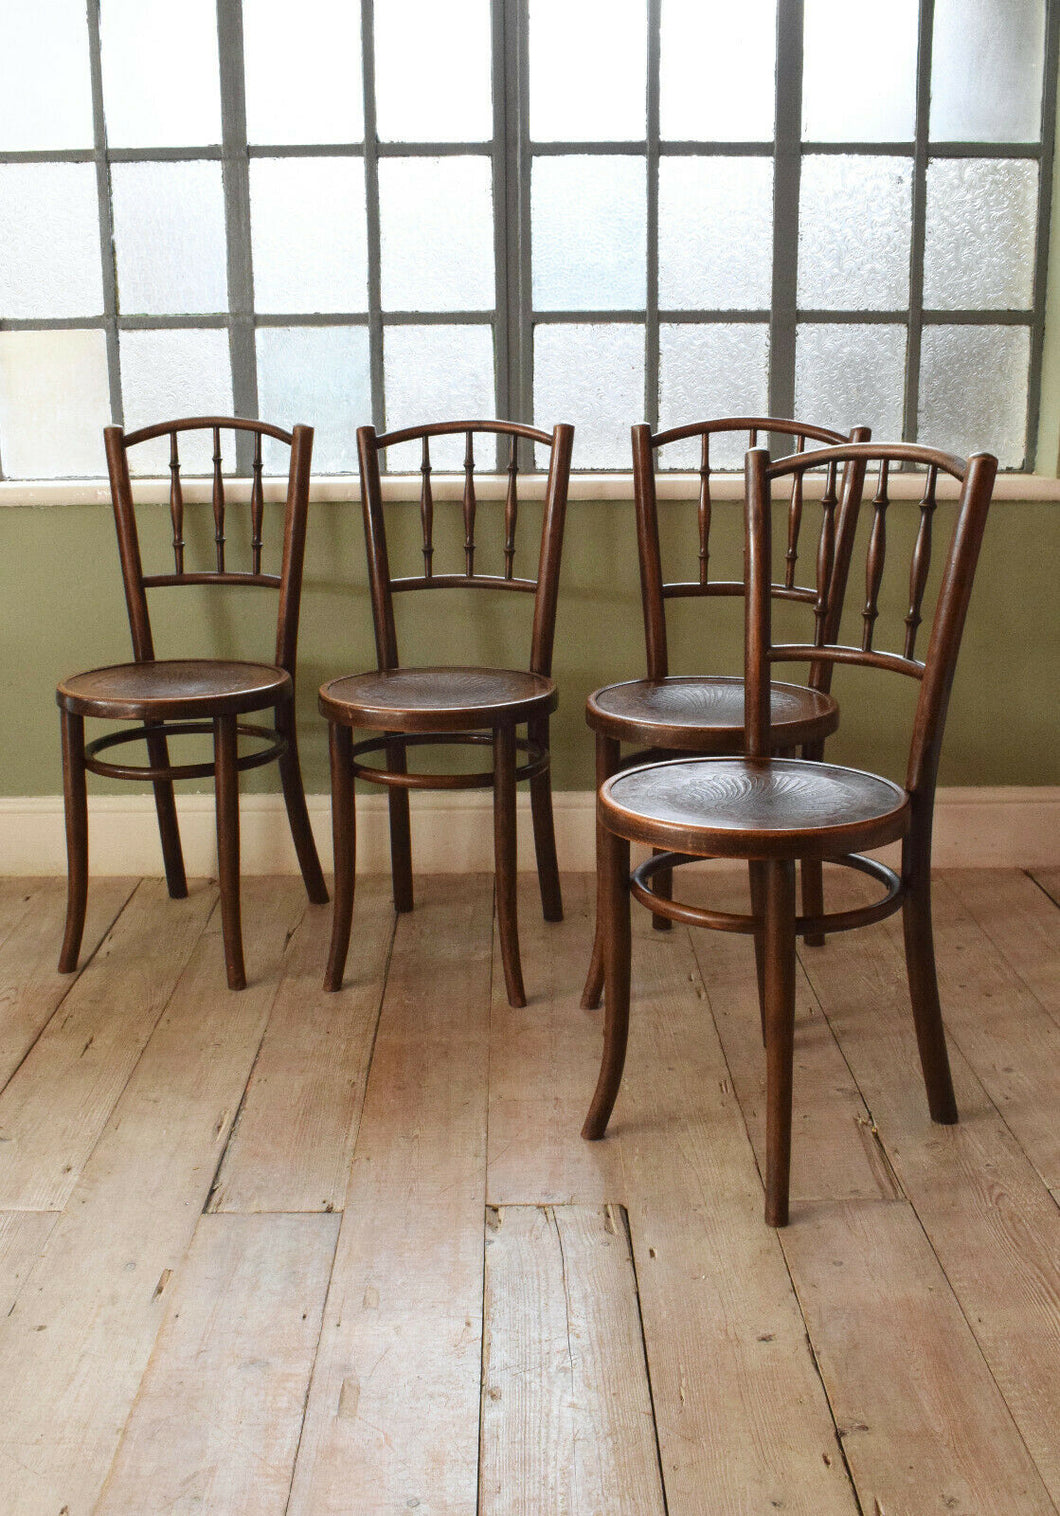 Set of 4 Antique Bent Wood Thonet Dining Chairs